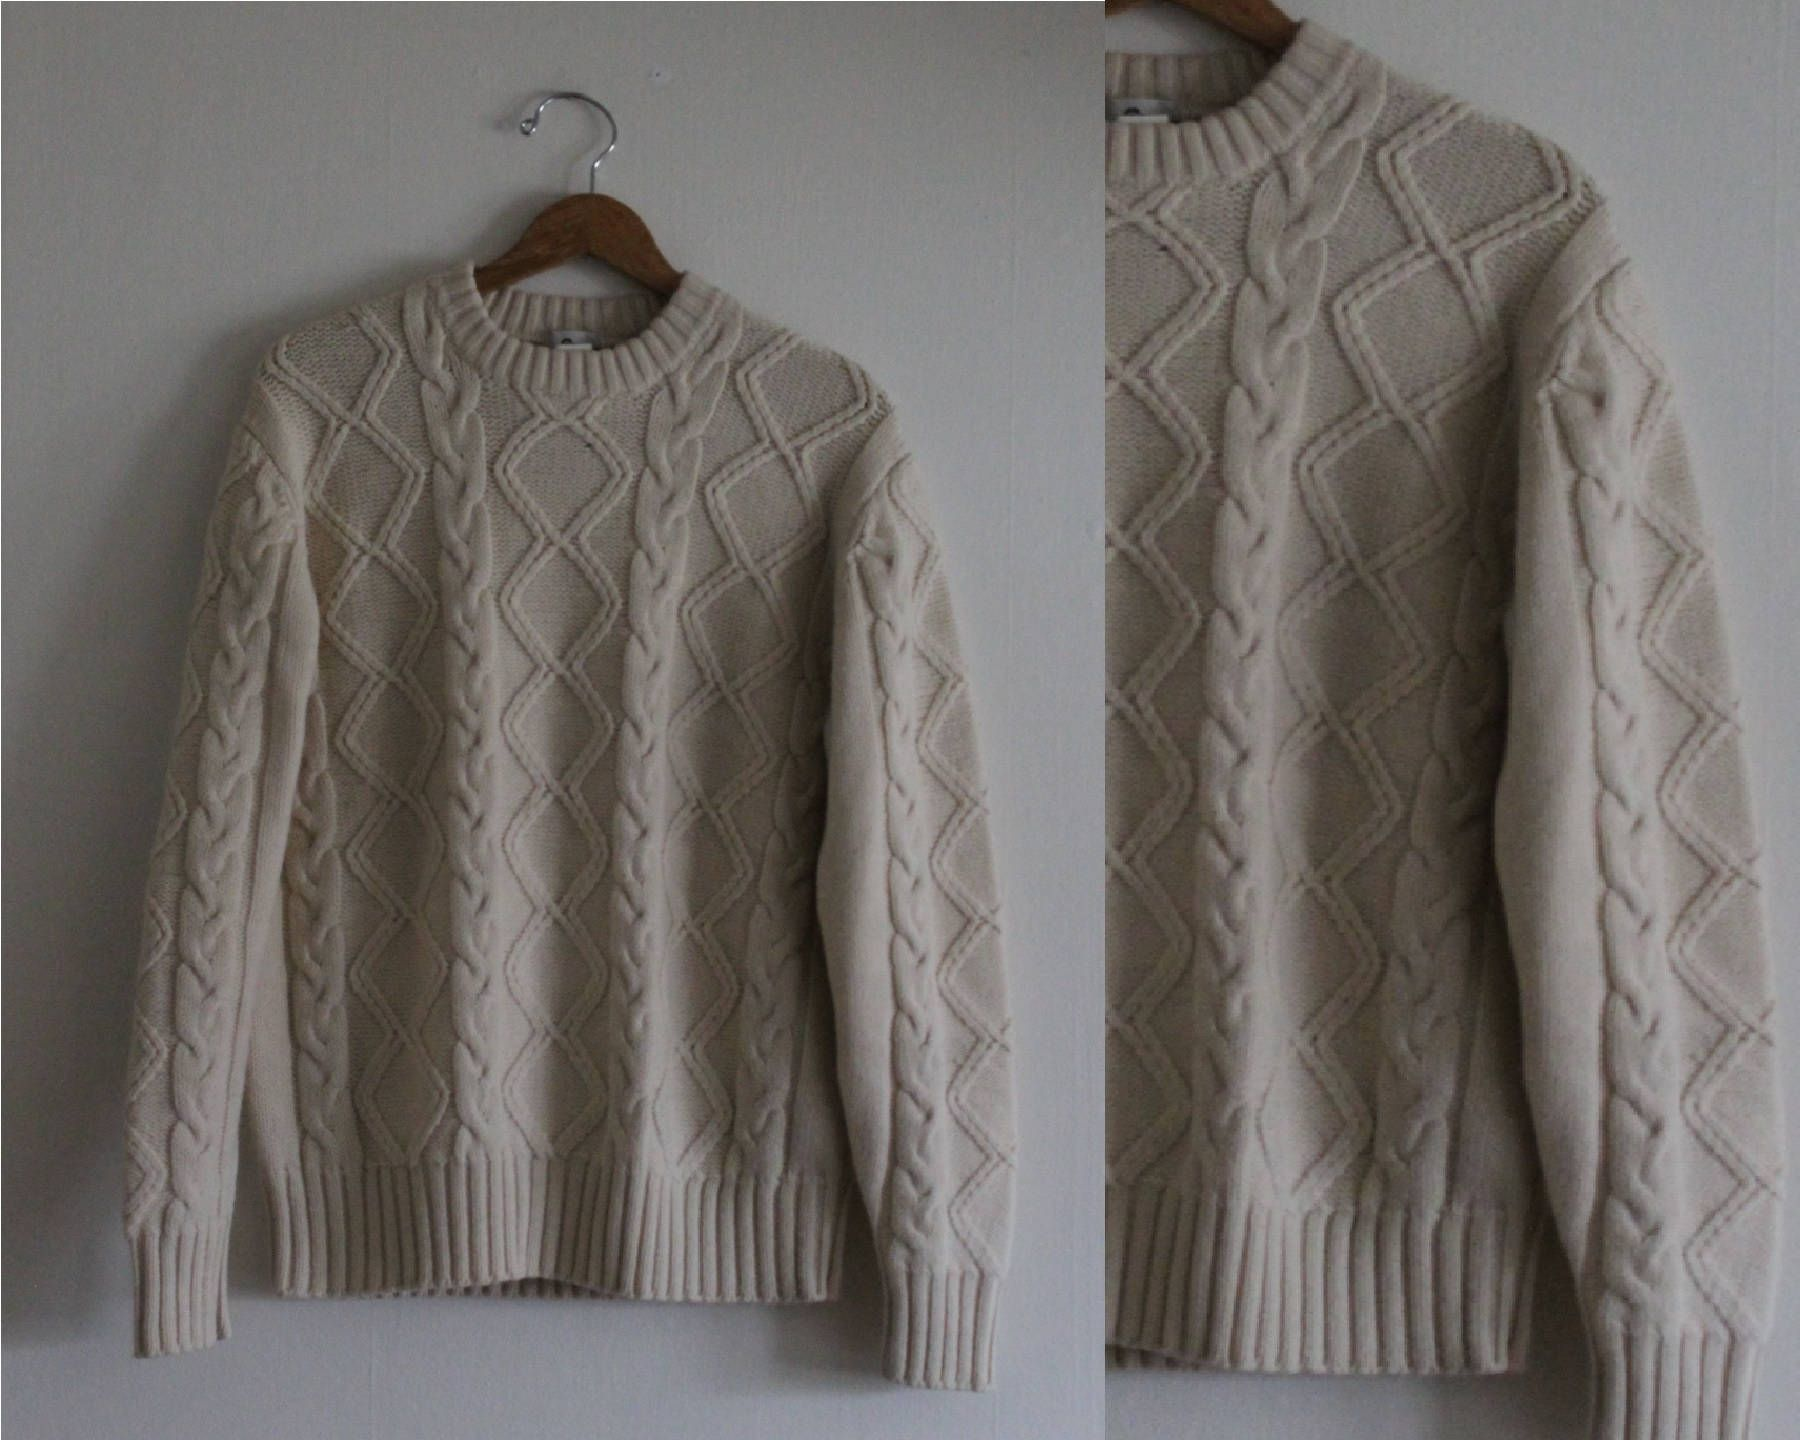 Vintage woolrich off white cableknit sweater unisex sz xl made in